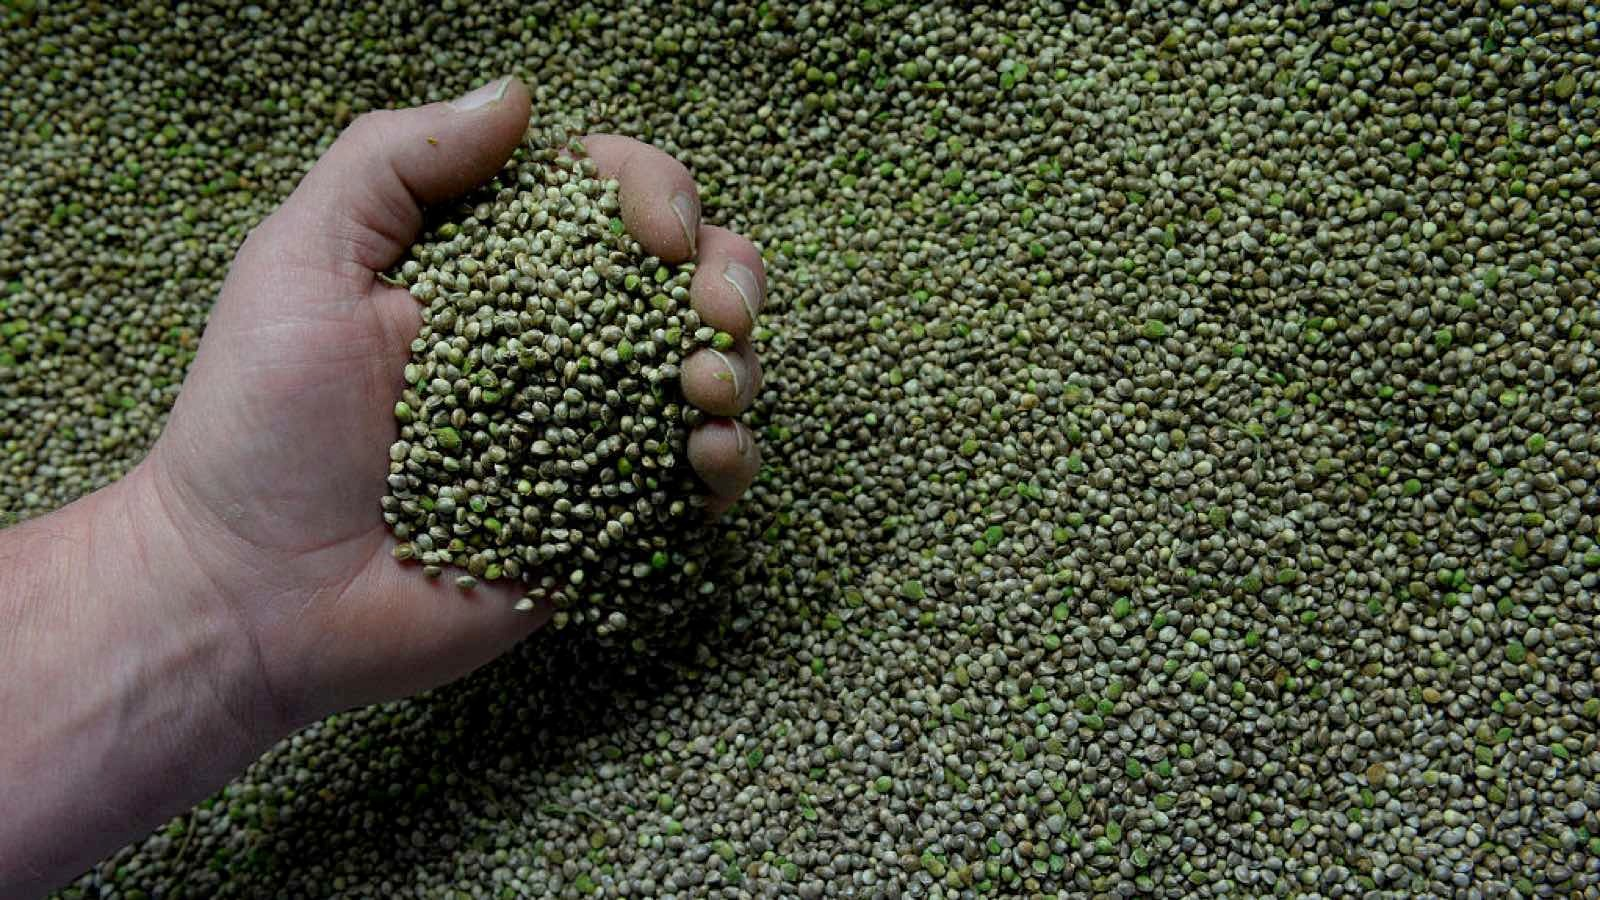 Hemp seeds are rich in iron and magnesium, essential for oxygen transportation and muscle contractions